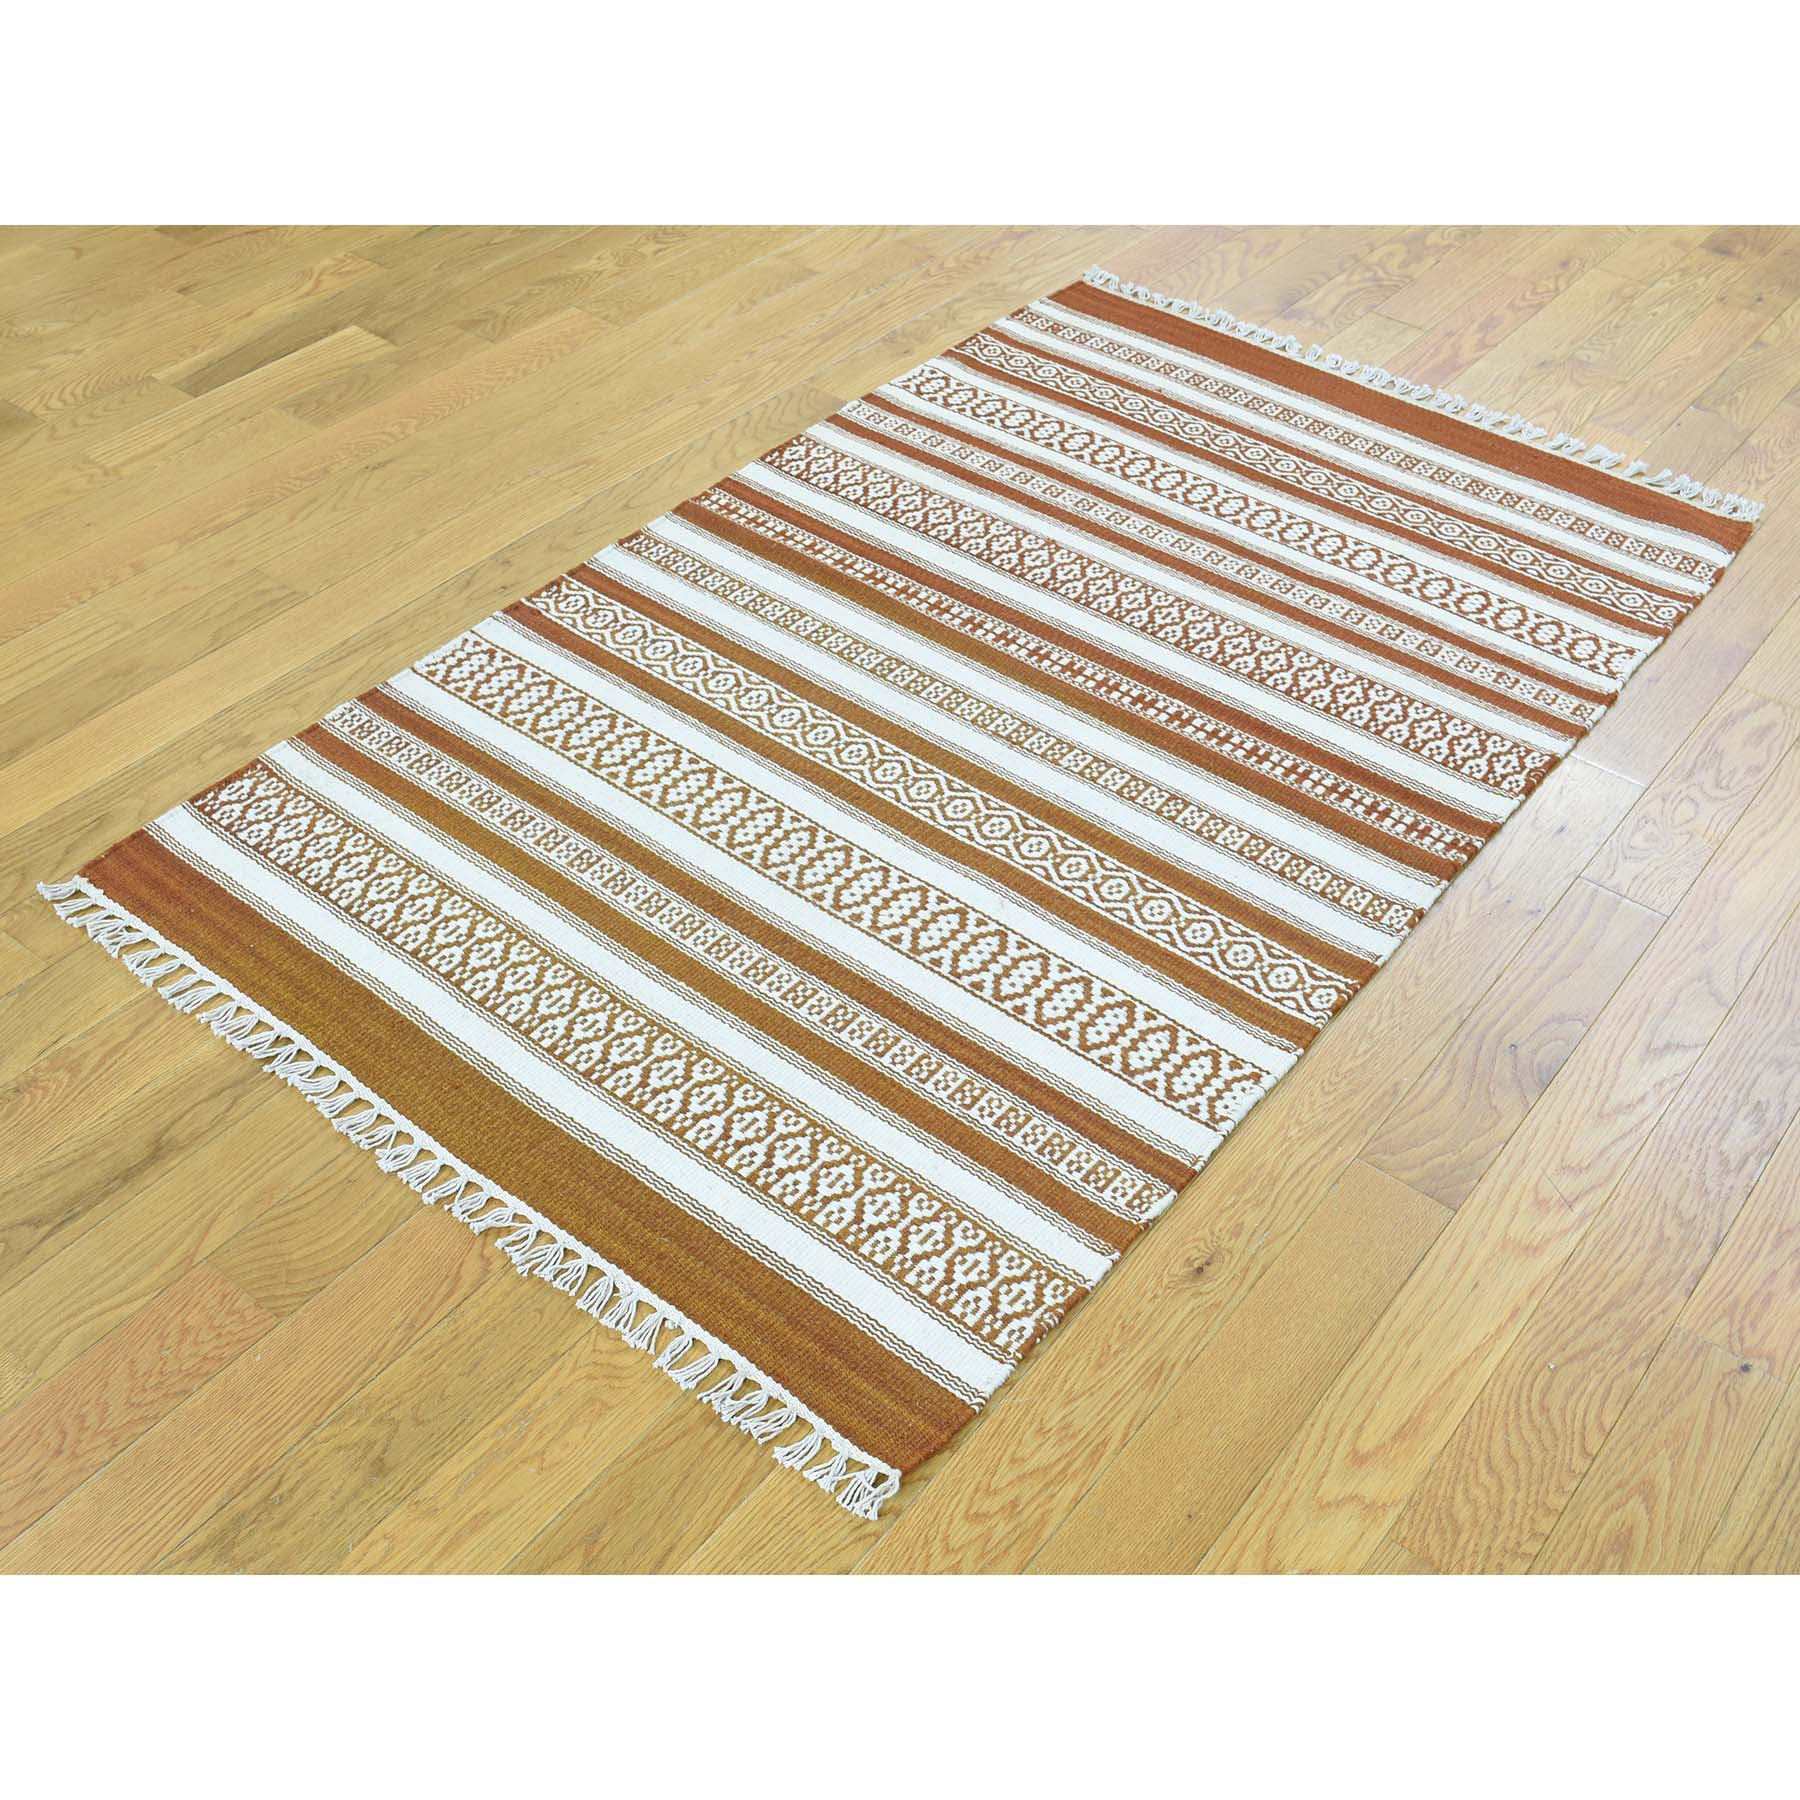 "Handmade Flat Weave Rectangle Rug > Design# SH31861 > Size: 3'-0"" x 5'-0"" [ONLINE ONLY]"